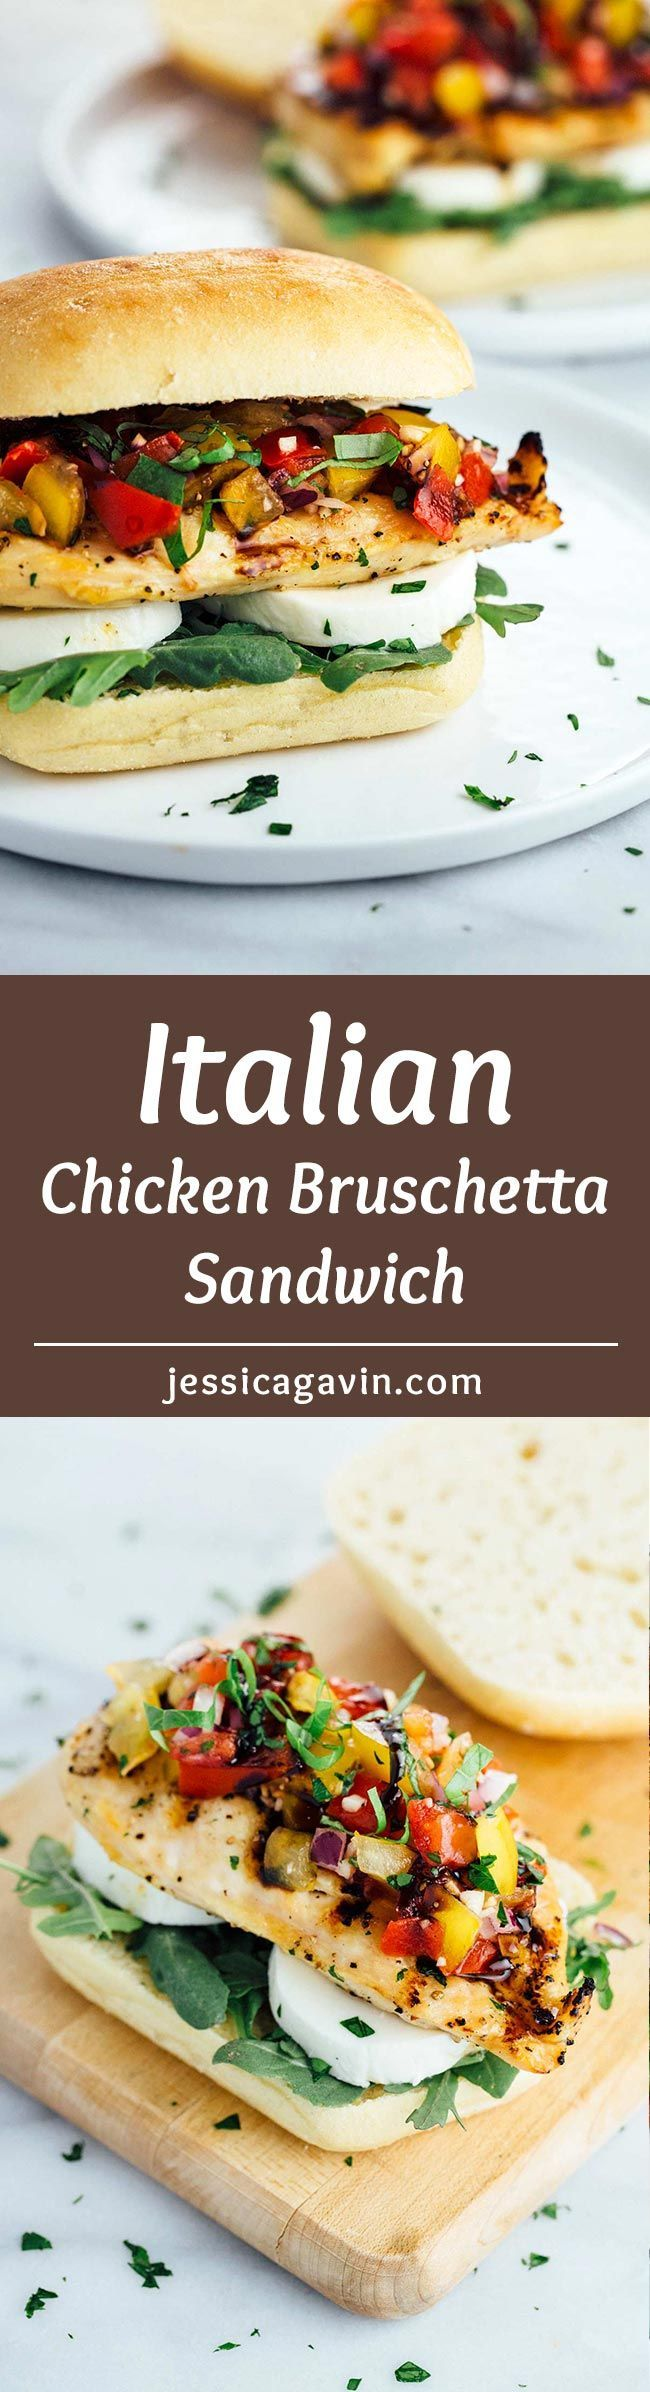 Grilled Chicken Bruschetta Sandwich - An overwhelming crowd-pleasing Italian recipe topped with fresh ripen tomatoes and a sweet and tangy balsamic glaze. | jessicagavin.com